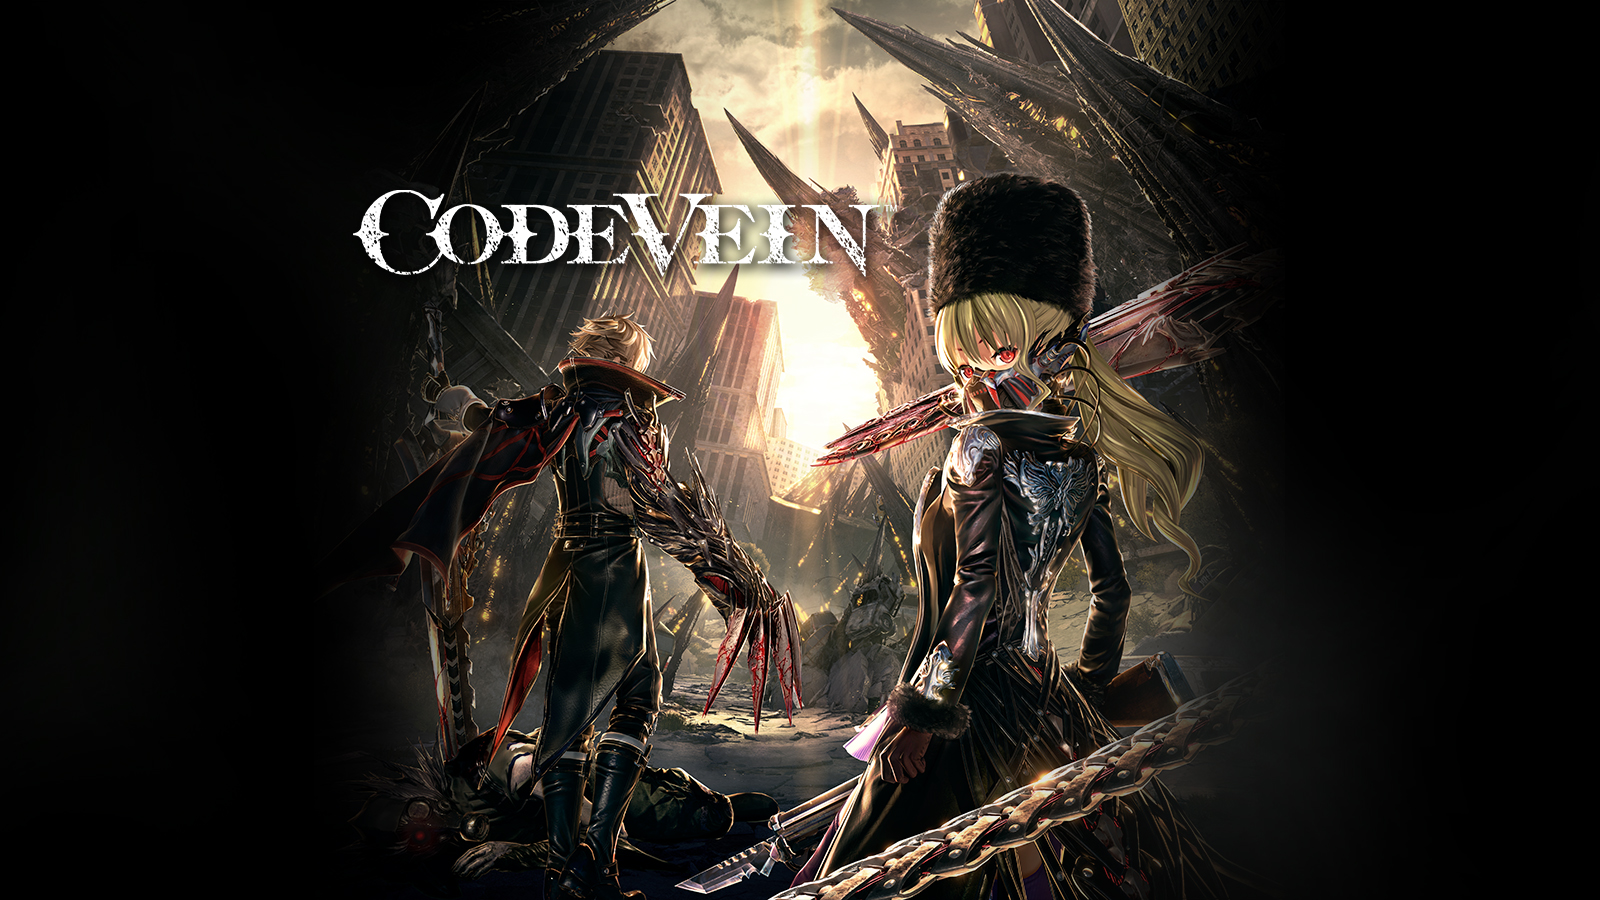 Code Vein Full Crack Download PC Game With Activation Code Is Here